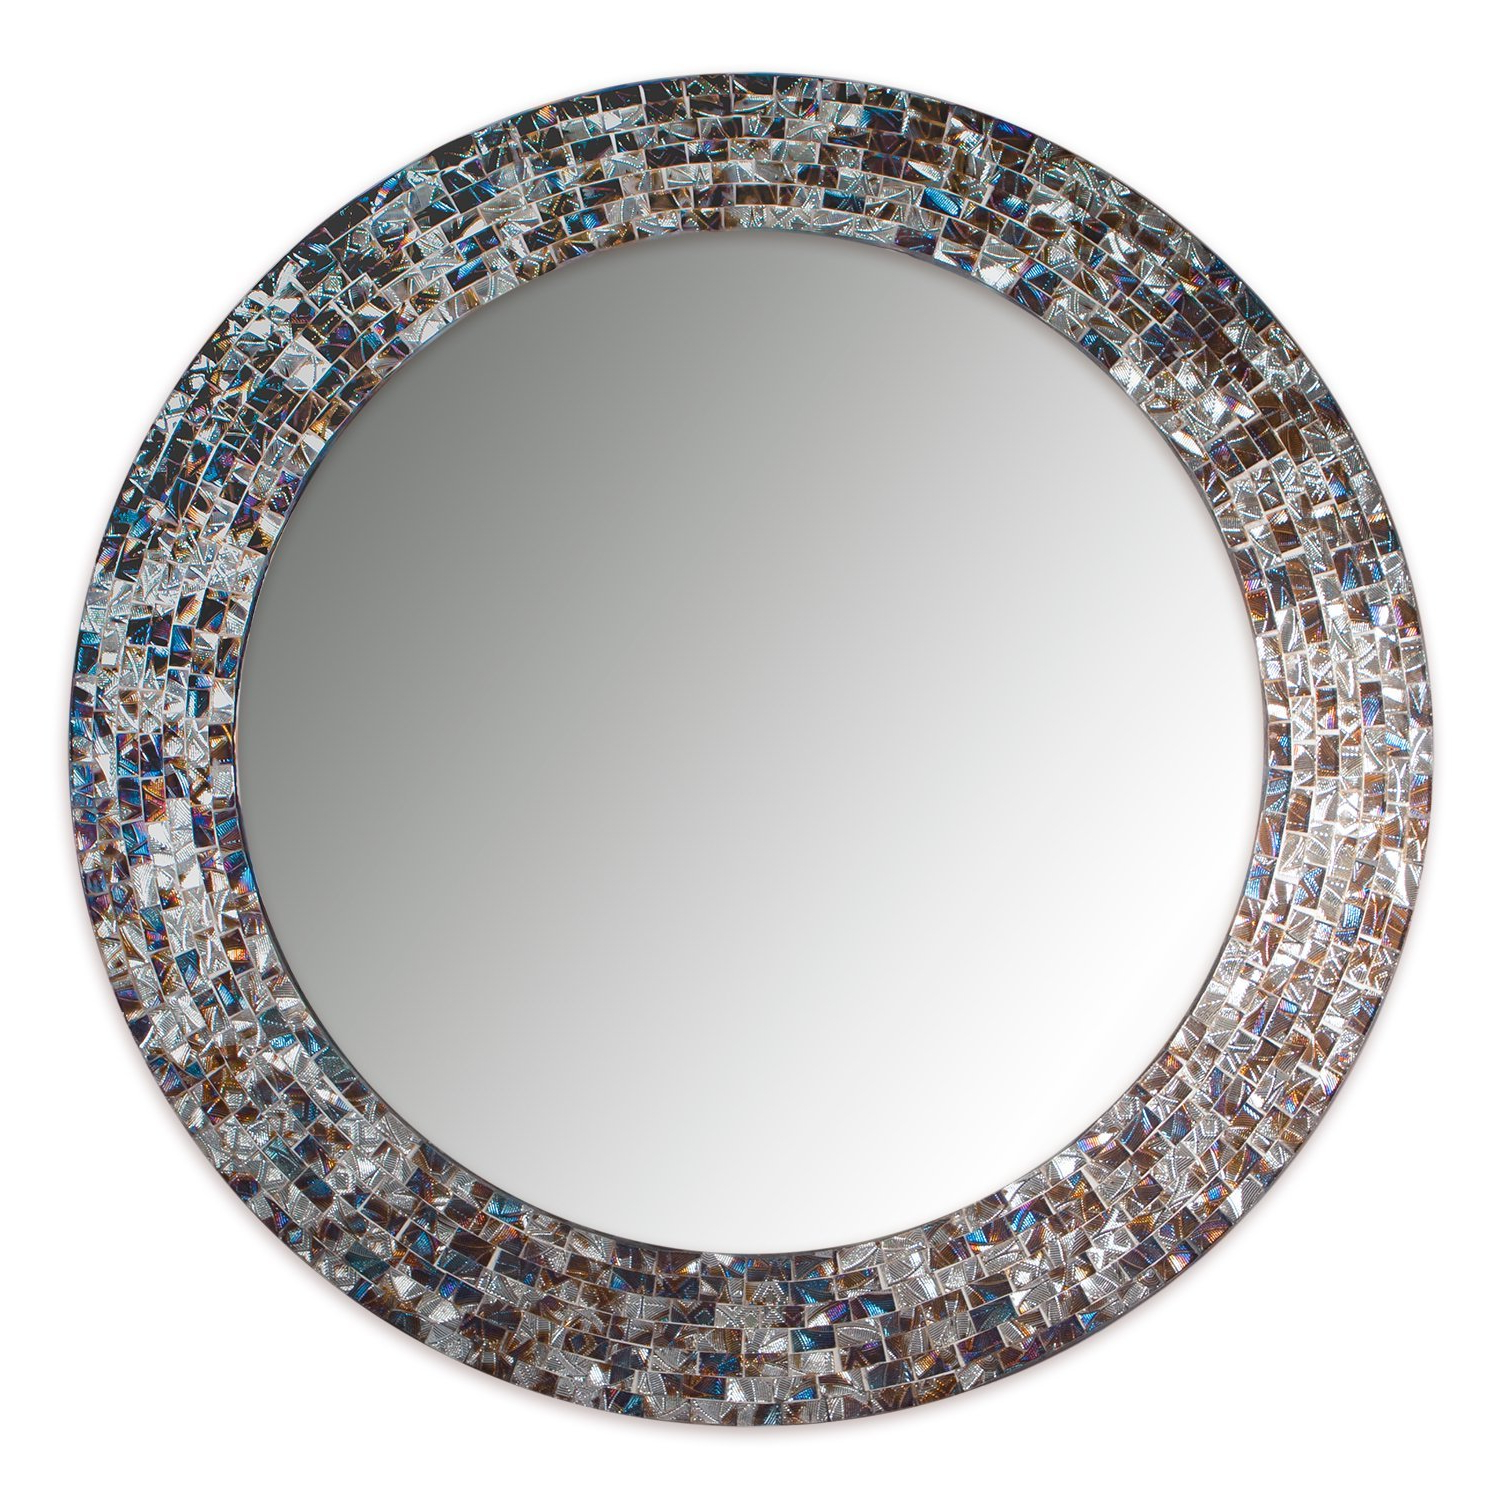 "Mosaic Wall Mirrors Throughout Best And Newest Decorshore 24"" Decorative Mosaic Glass Wall Mirror – Silver (silver) (View 13 of 20)"